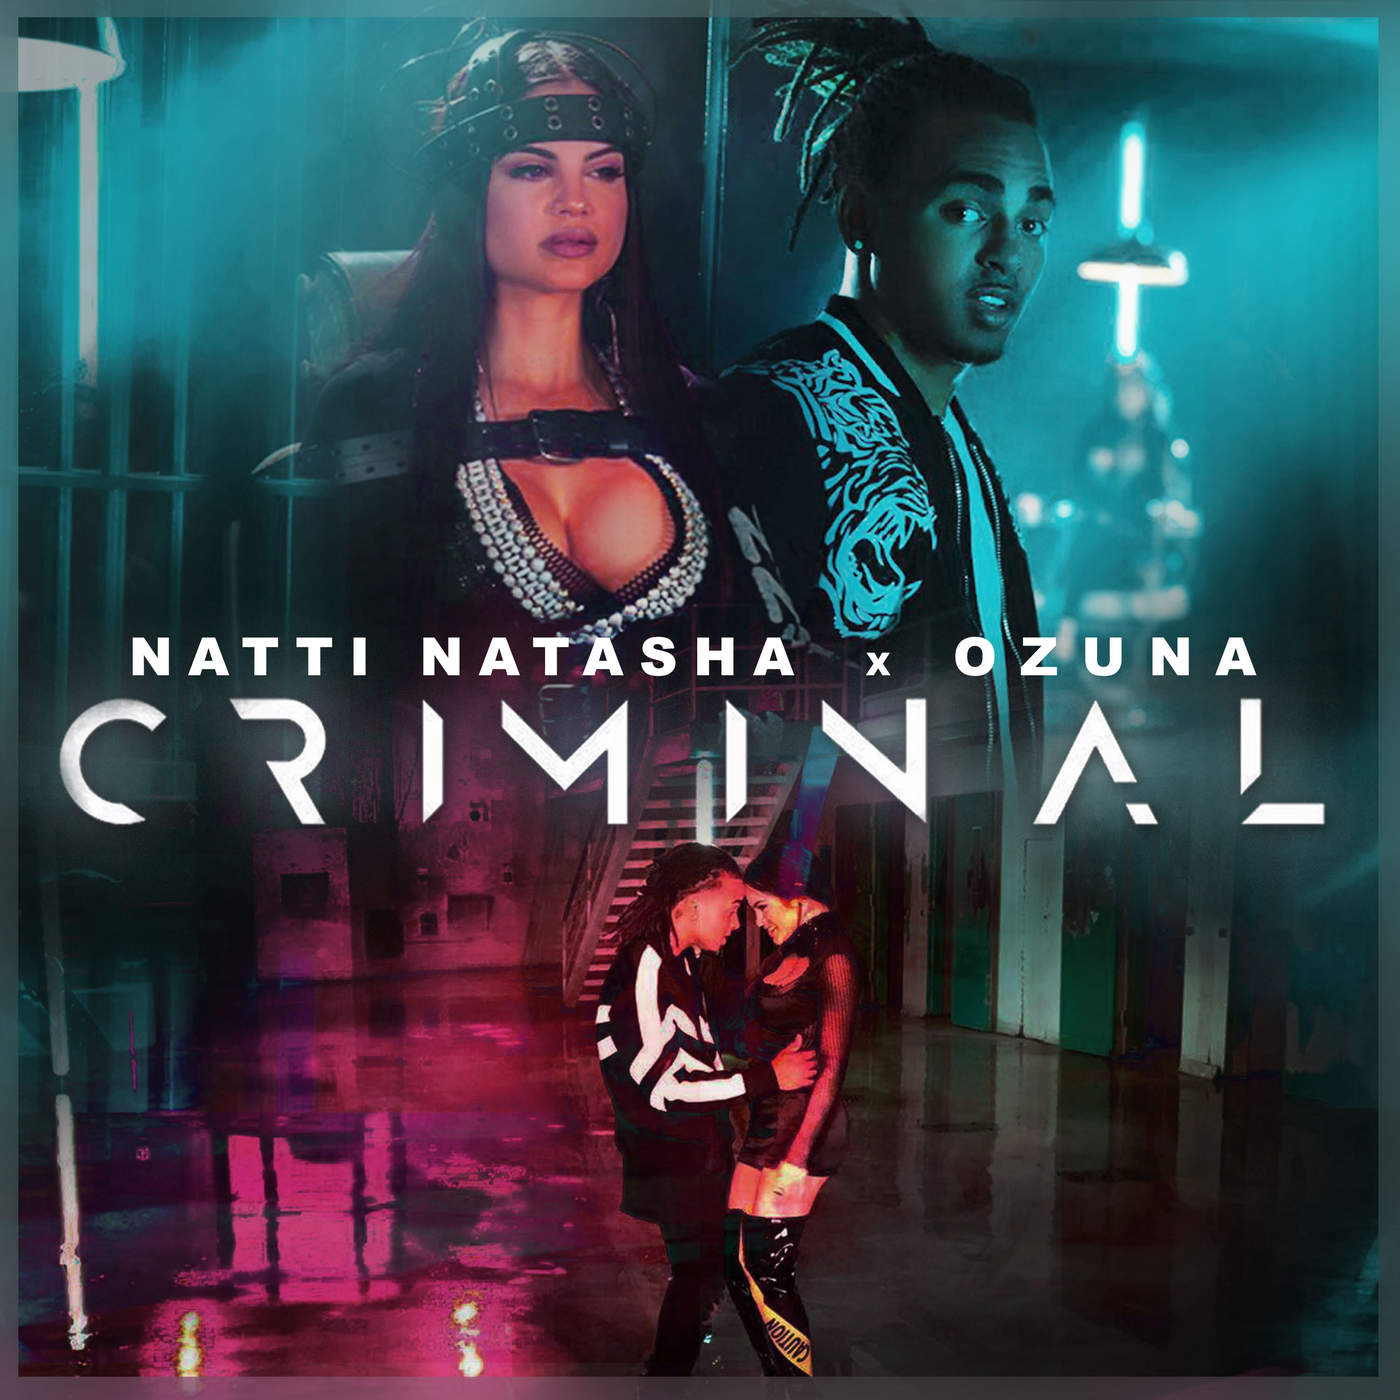 Natti Natasha & Ozuna - Criminal - Single